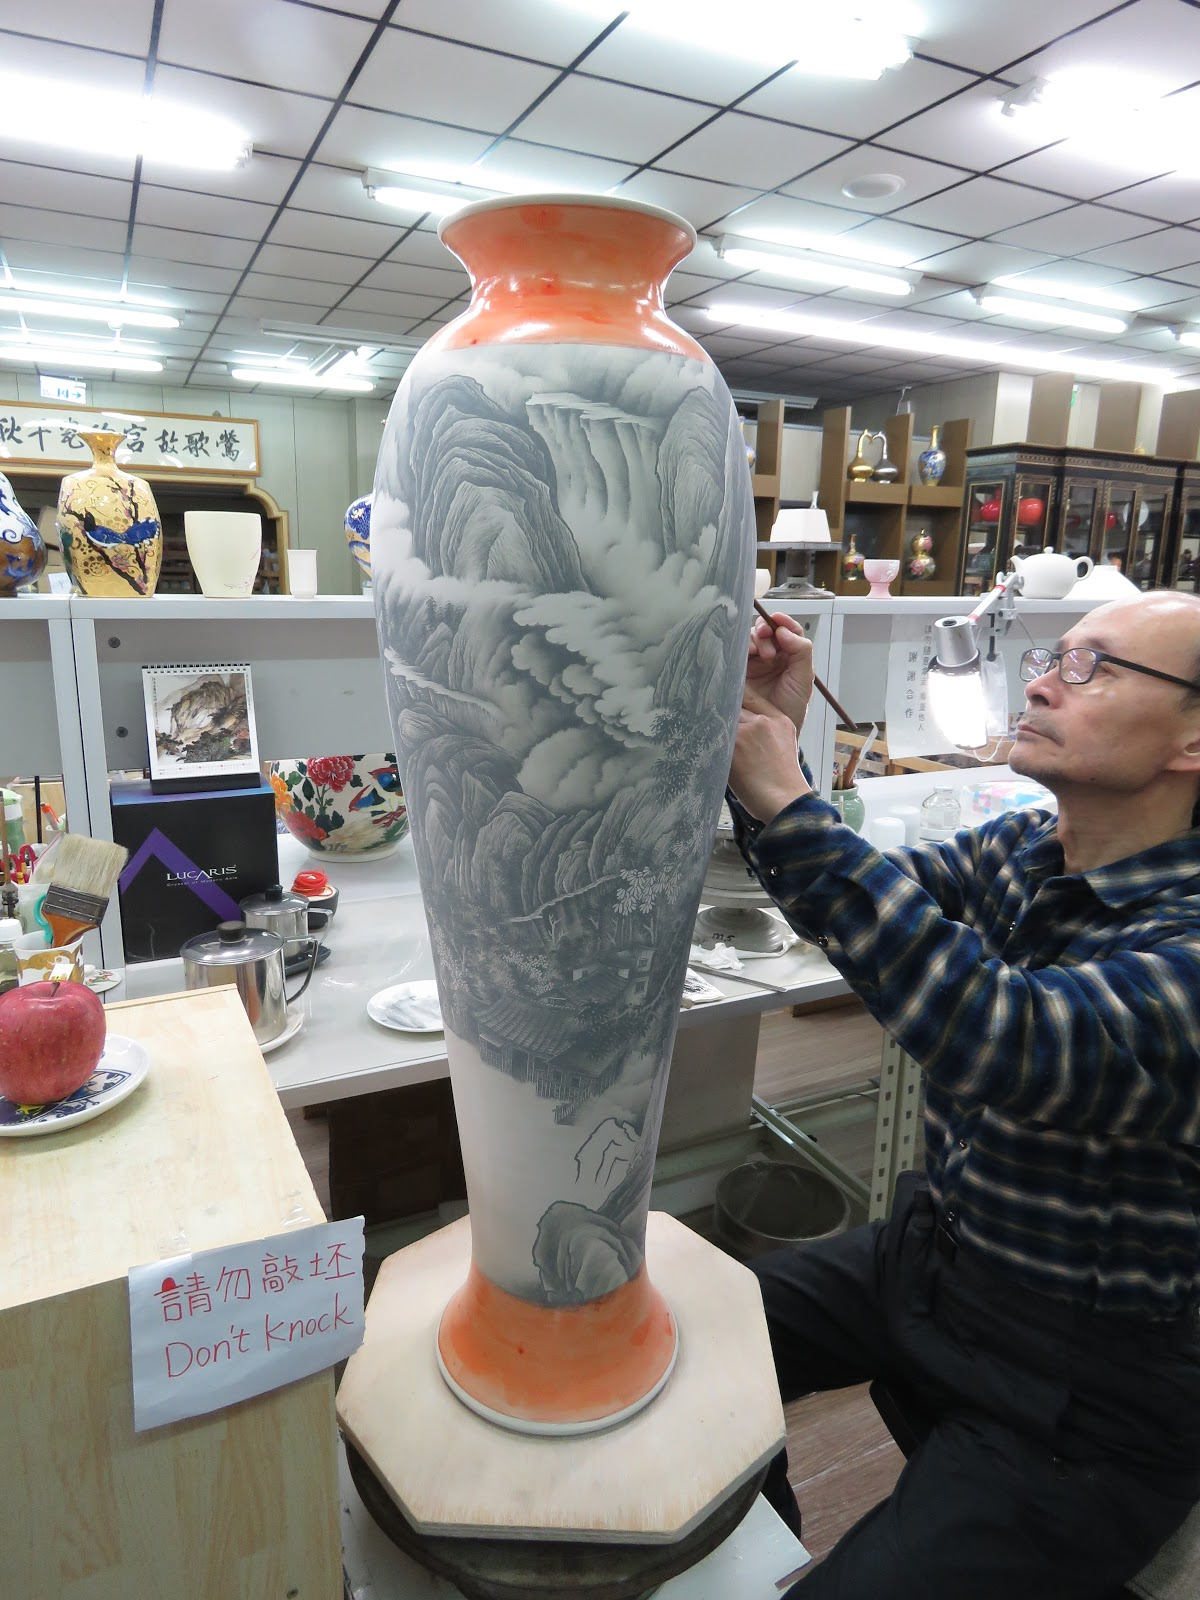 Travelingrhodesagain Greetings From Taipei If You Look Closely Can See The Broken Right Leg At Urn On Left It Is Designed To Like But Actually Very Sturdy Painting Behind Looks Flat In